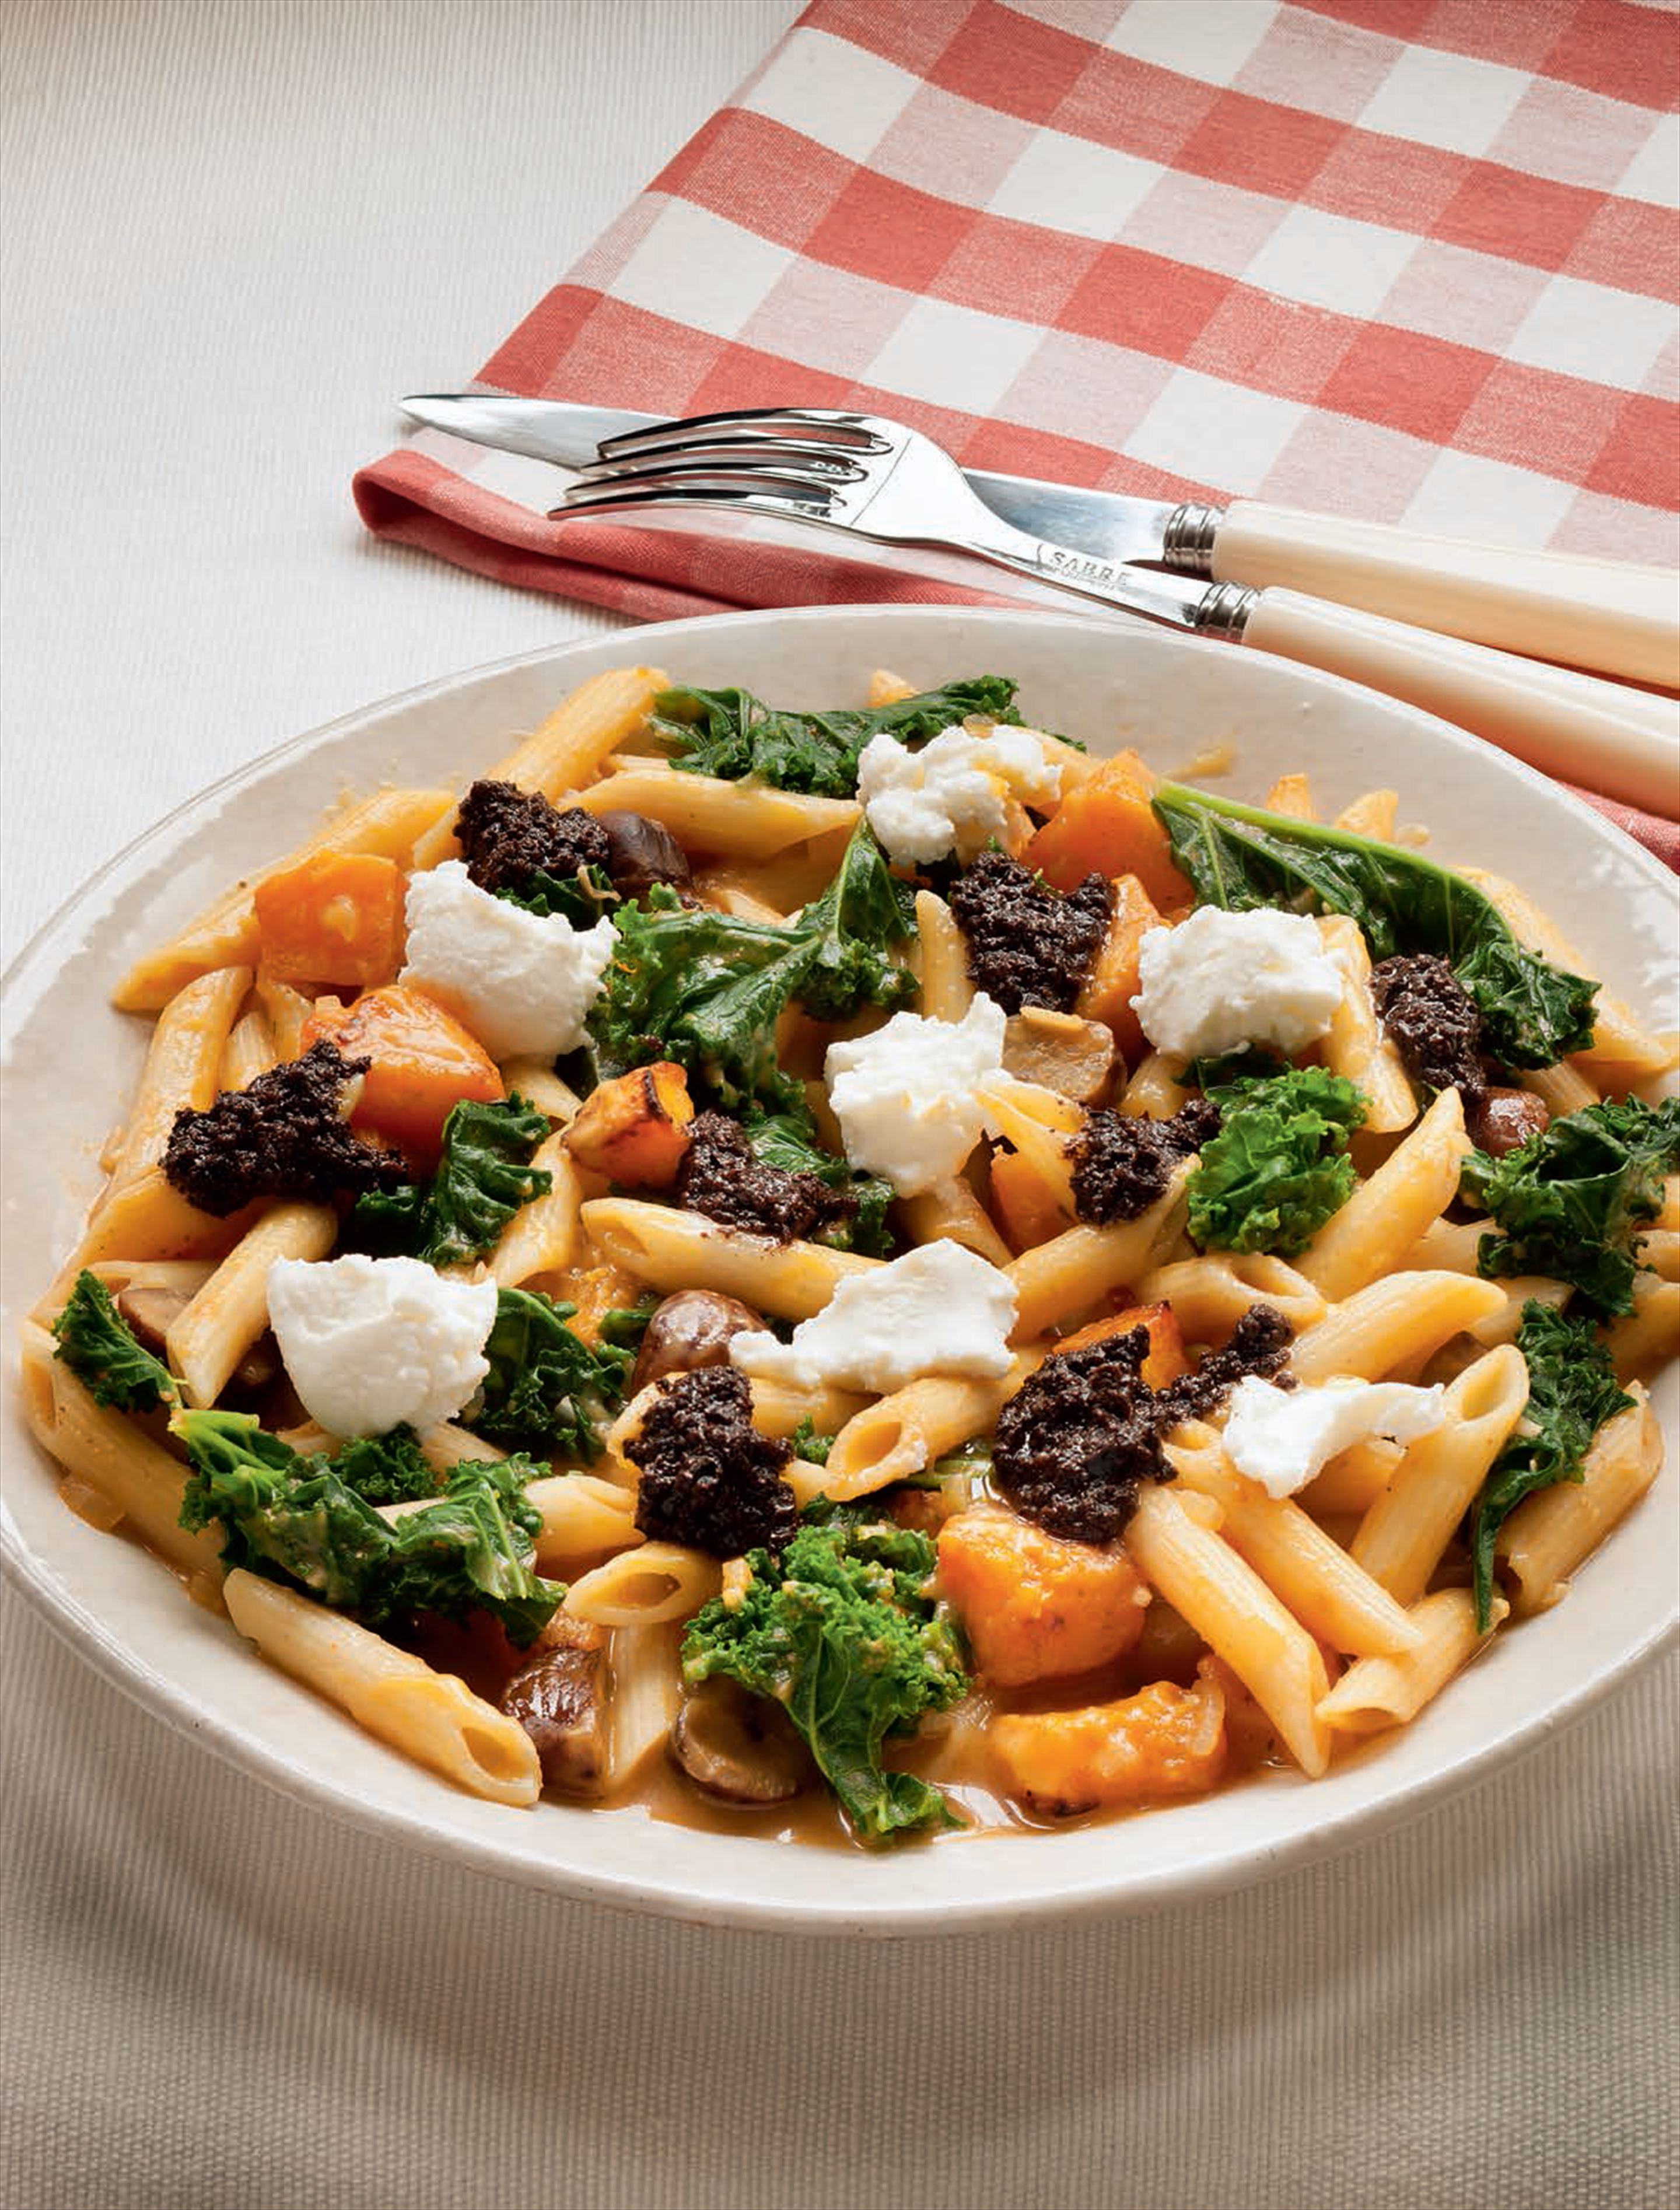 Roast chestnut, squash & kale penne with tapenade